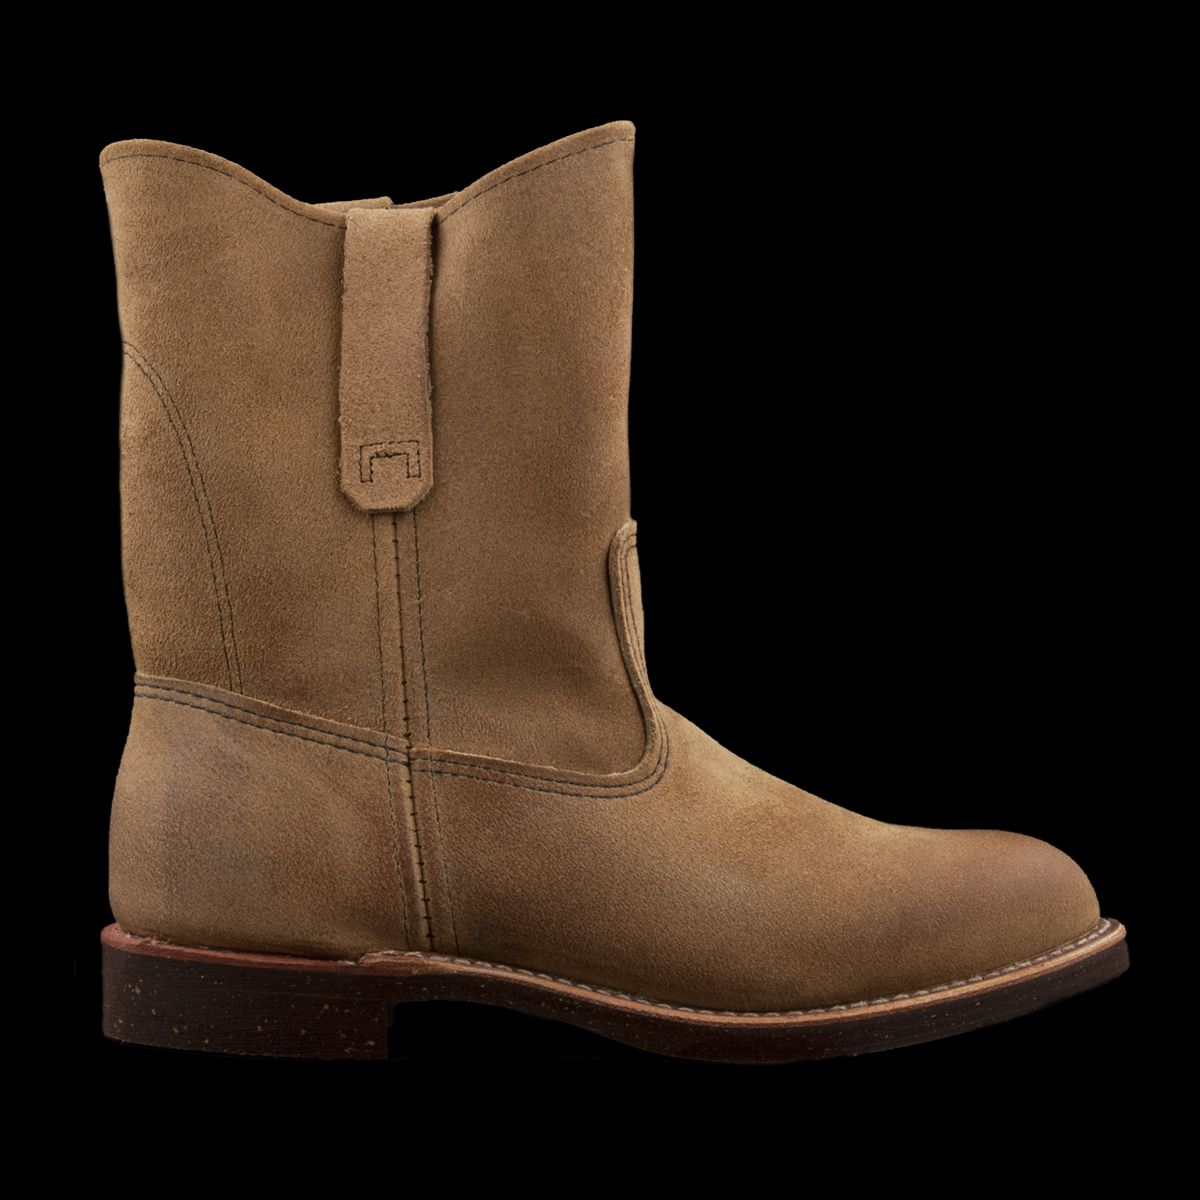 UNIONMADE - Red Wing - 9 Inch Pecos Boot in Hawthrone 8188